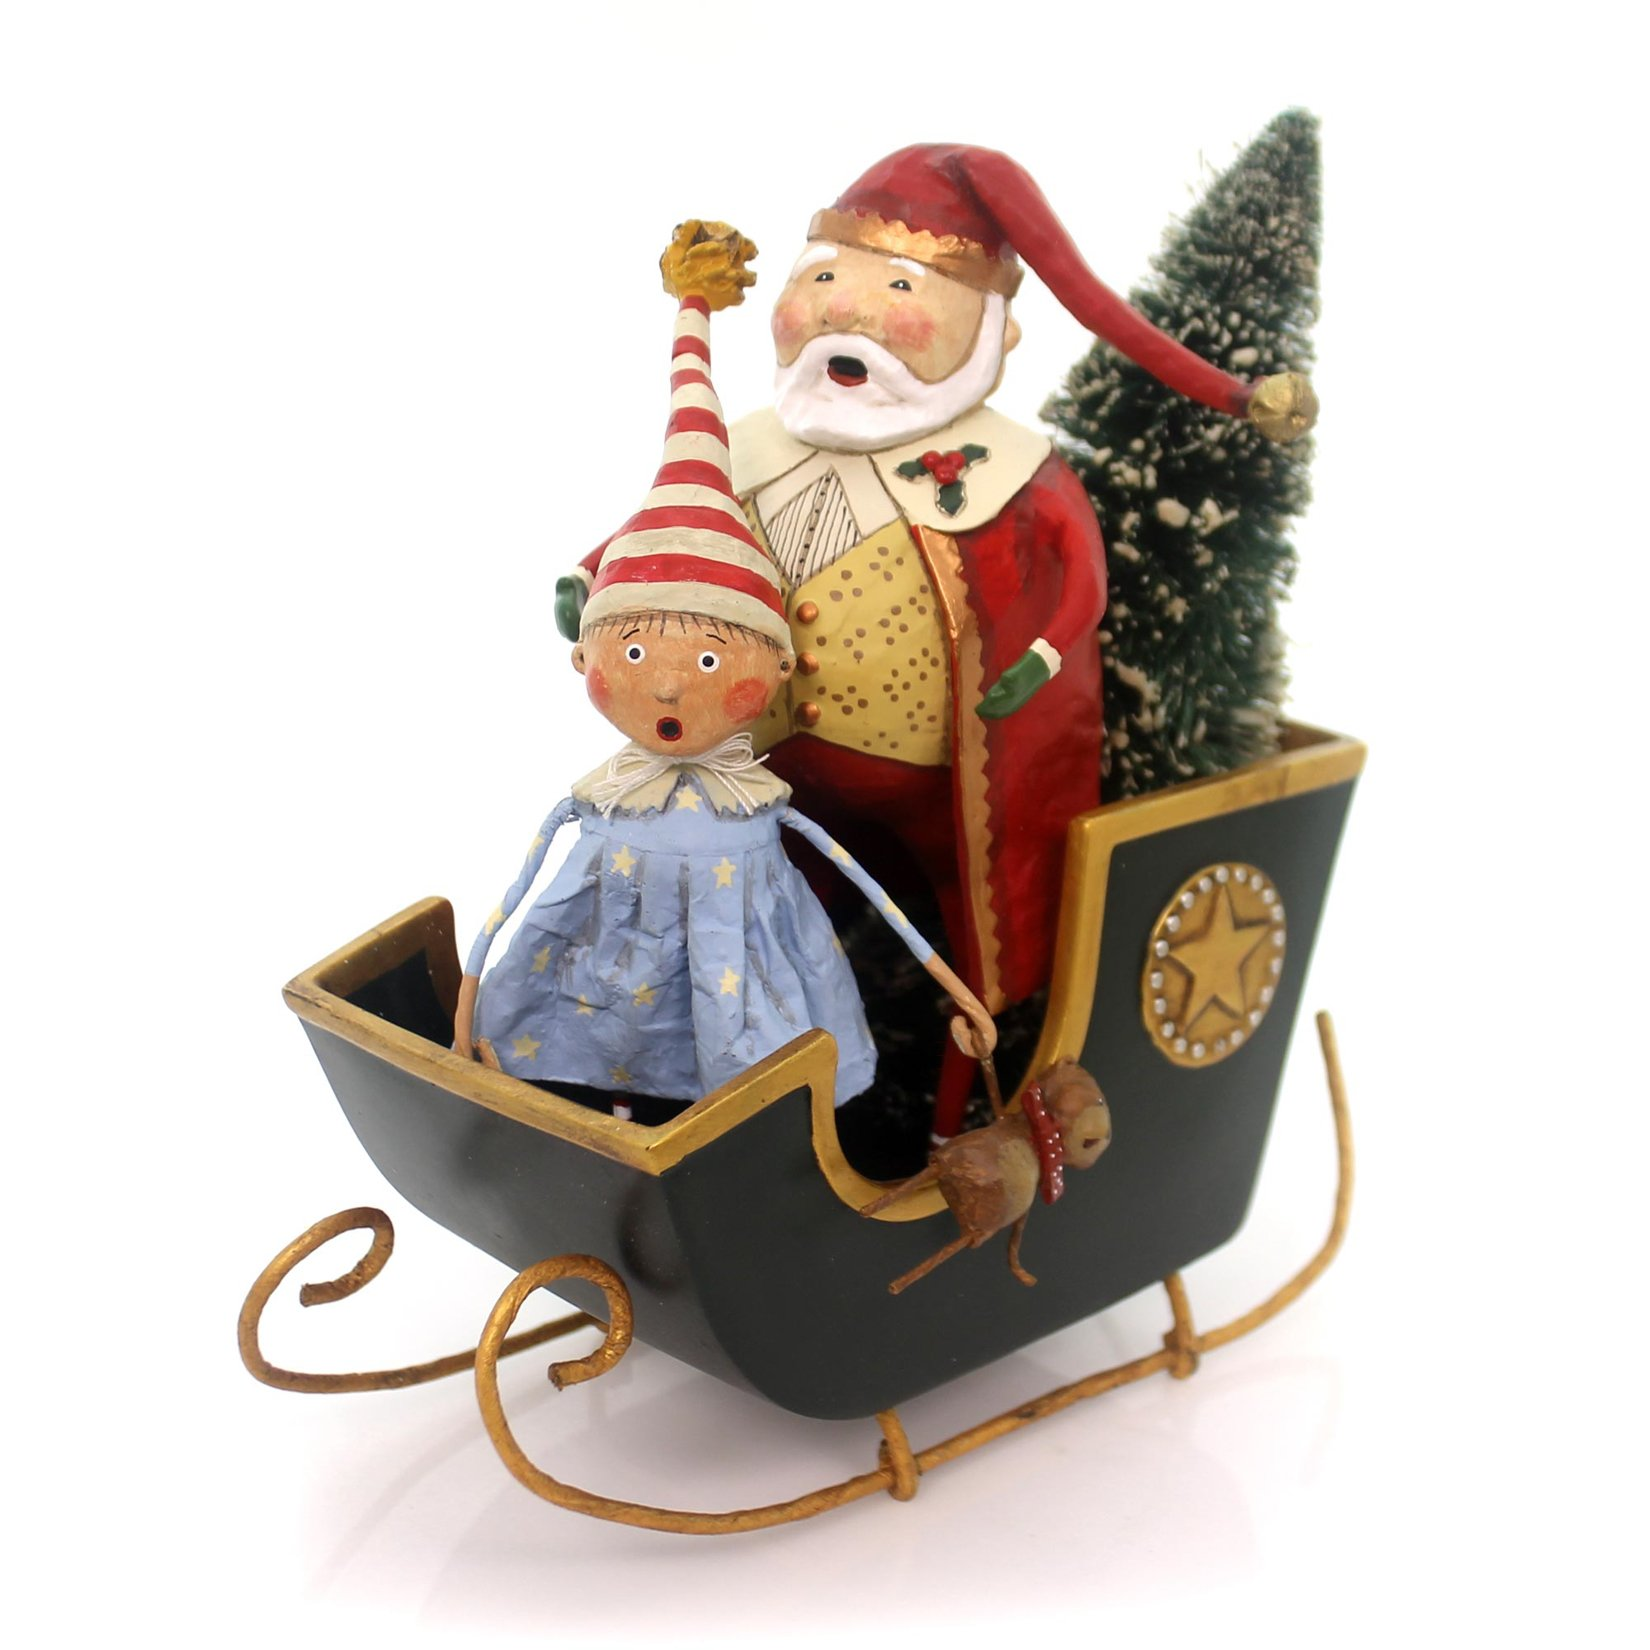 Lori Mitchell SANTA'S SLEIGH RIDE FIGURINE Little Girl W/ Bear Christmas 11016